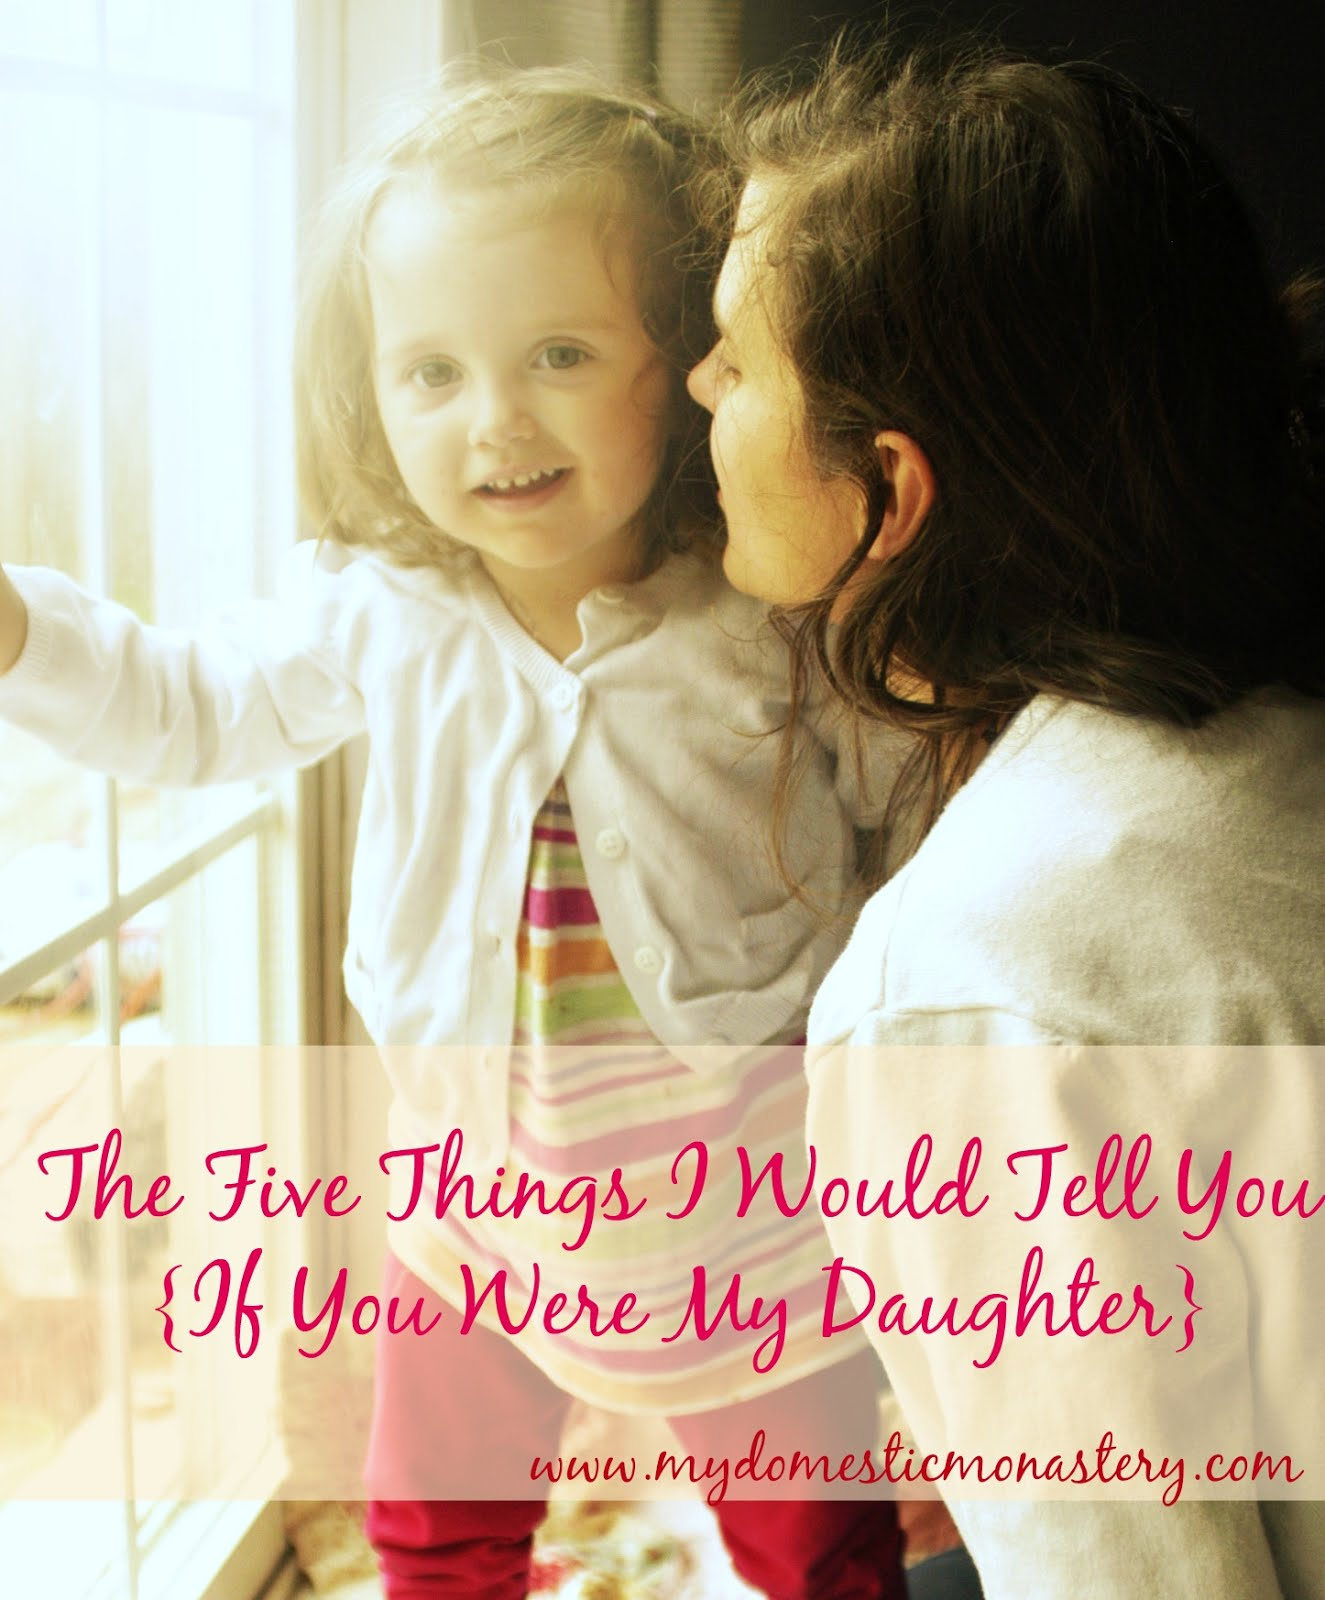 The Five Things I Would Tell You...